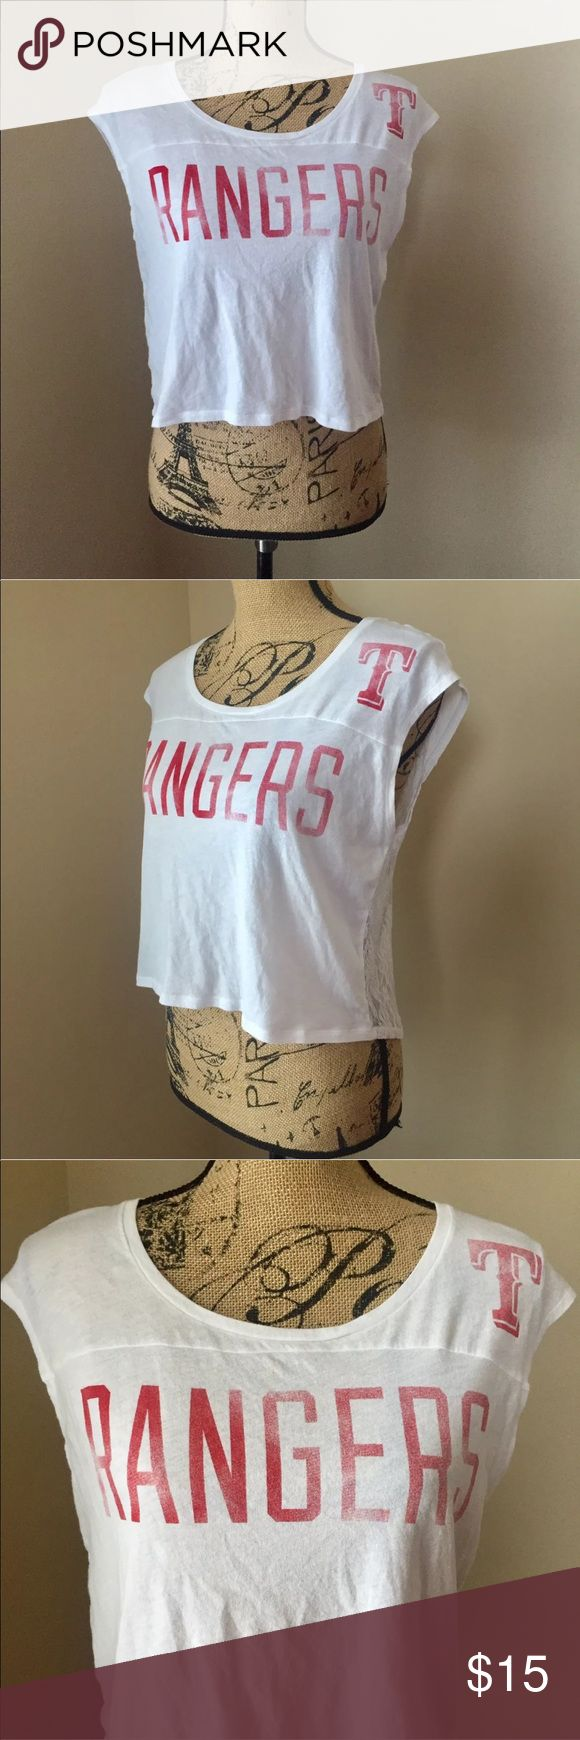 """Victoria Secret Pink 5th & Ocean Rangers Crop Top This Victoria Secret Pink Ranger blouse is in great, preloved condition. It is a size Extra Small, and still has plenty of life left. It is white with red lettering, reading """"Rangers"""" in the front. A """"T"""" for Texas on the top left. No sleeves, and mesh all throughout the back. Perfect for spring/summer weather and for baseball season! 5th & Ocean Tops Crop Tops"""